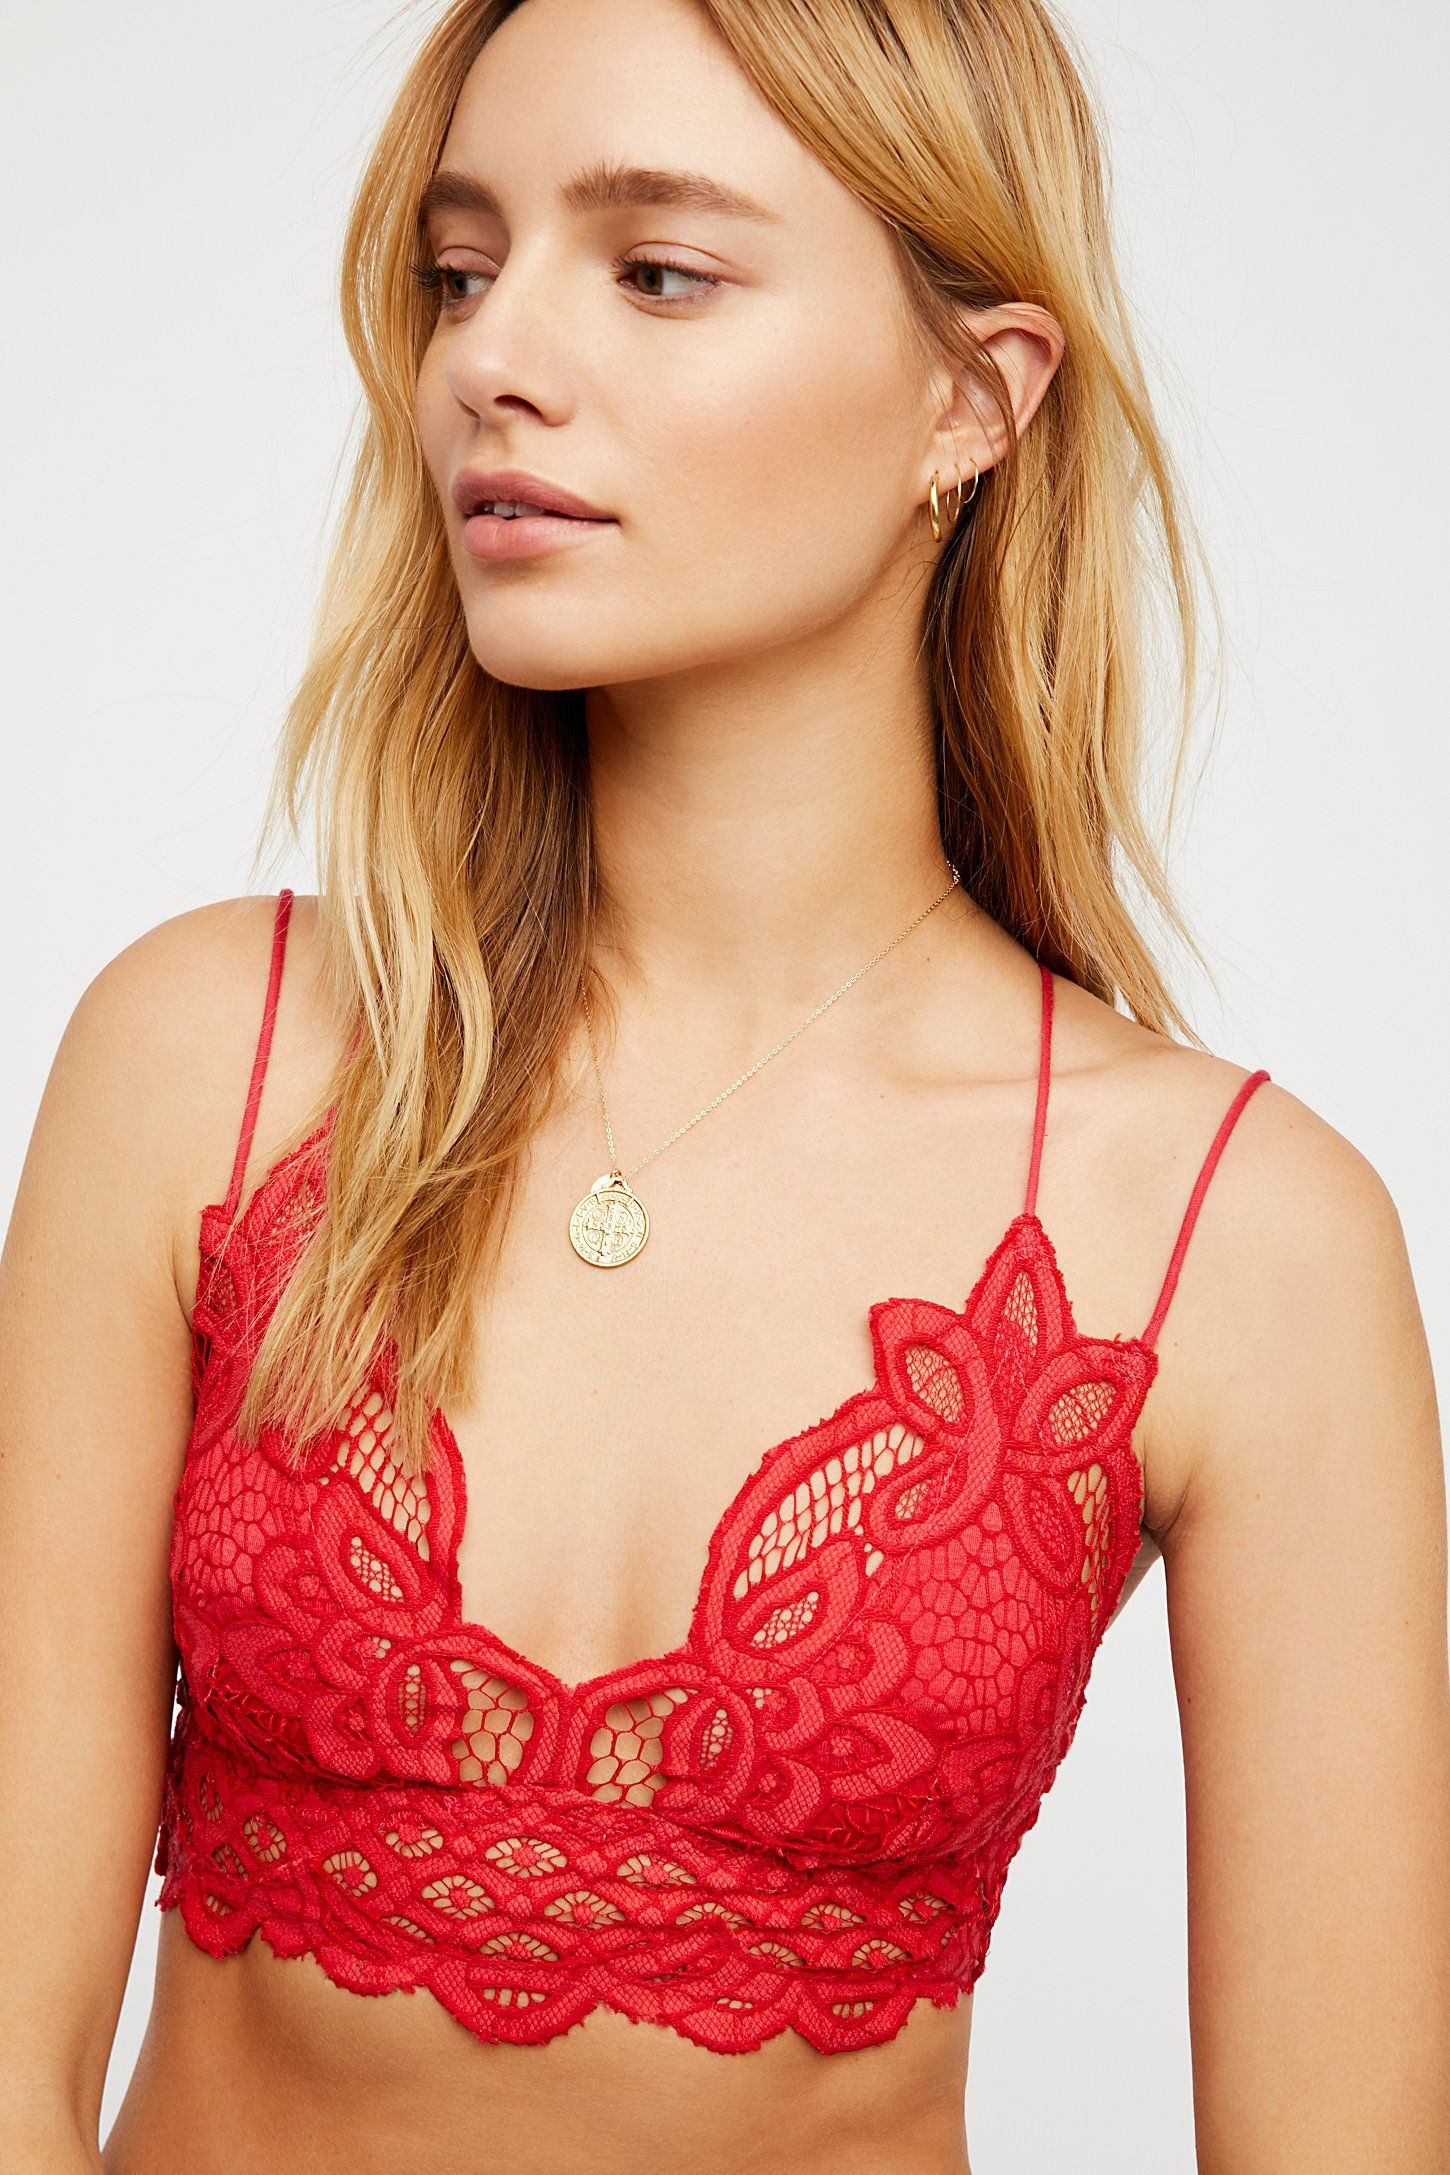 413e15a4d32a2 Shop our FP One Adella Bralette at FreePeople.com. Share style pics with FP  Me